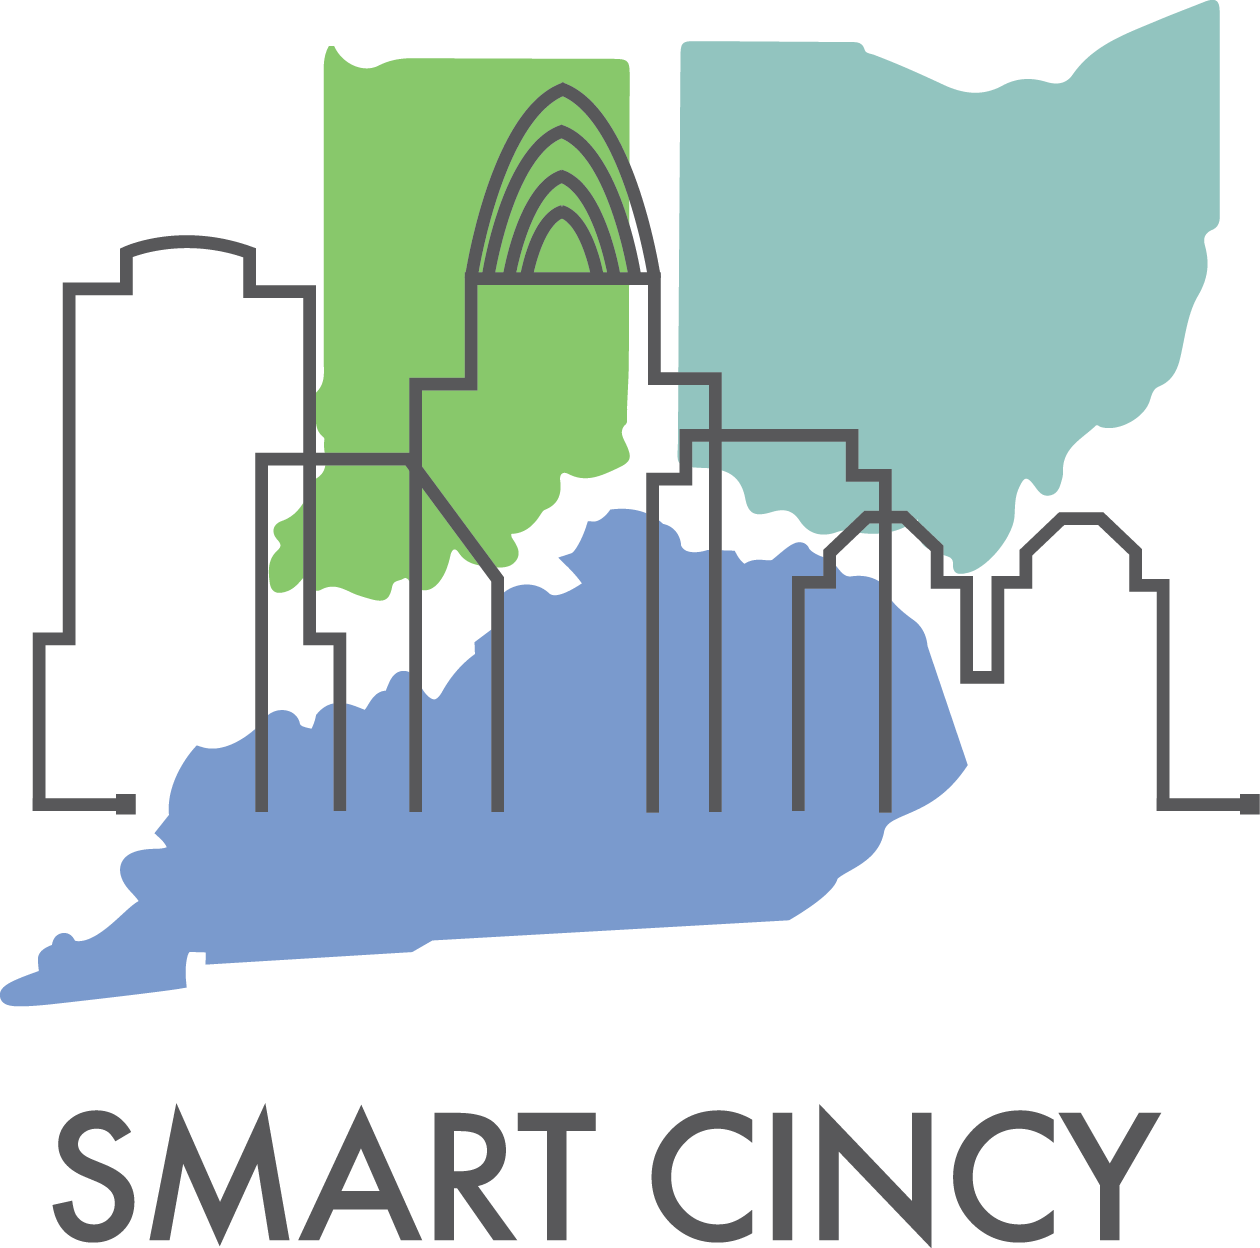 Public and private leaders have joined forces to launch Regional Smart Cities Initiatives throughout Ohio, Kentucky, and Indiana. Smart City solutions will help estblish a global model for smart, regional growth.